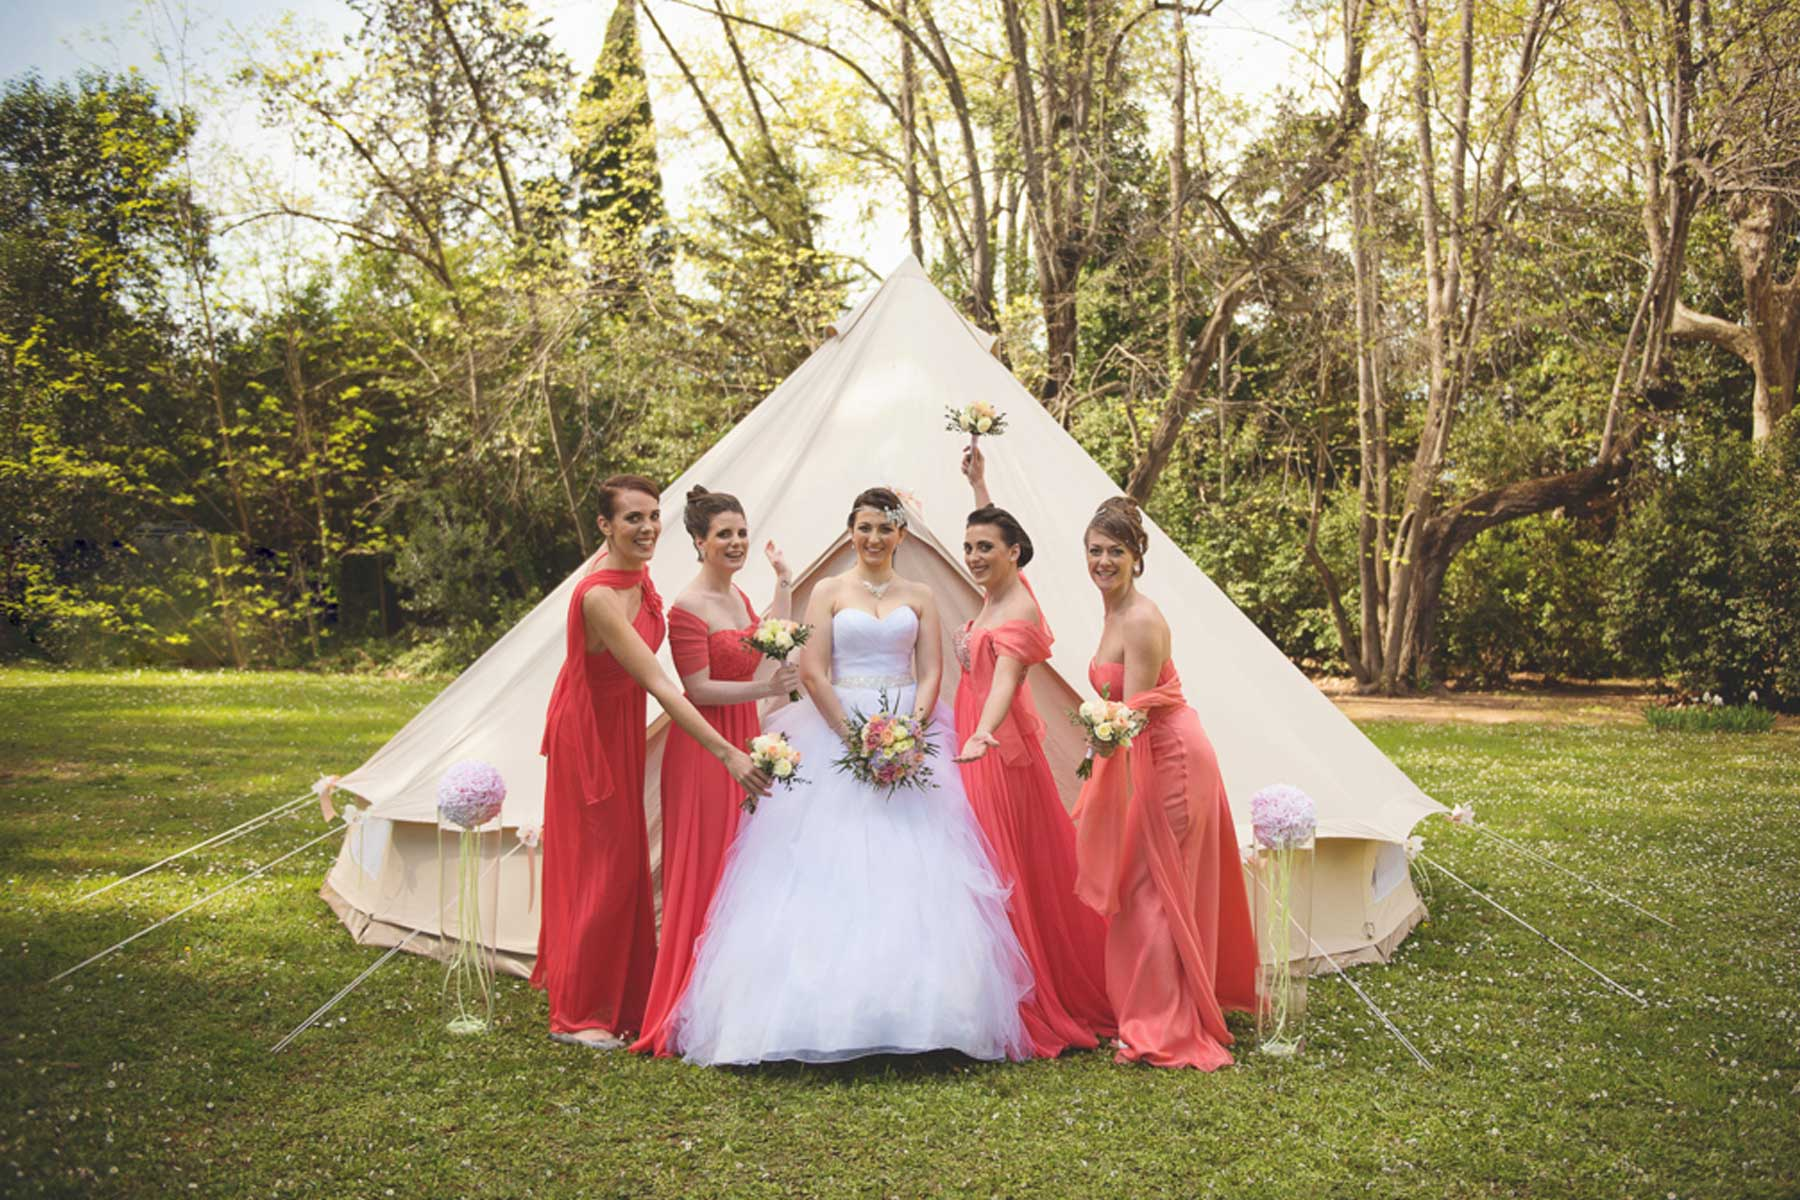 location tente mariage champetre 2 - Galerie Mariage Champetre